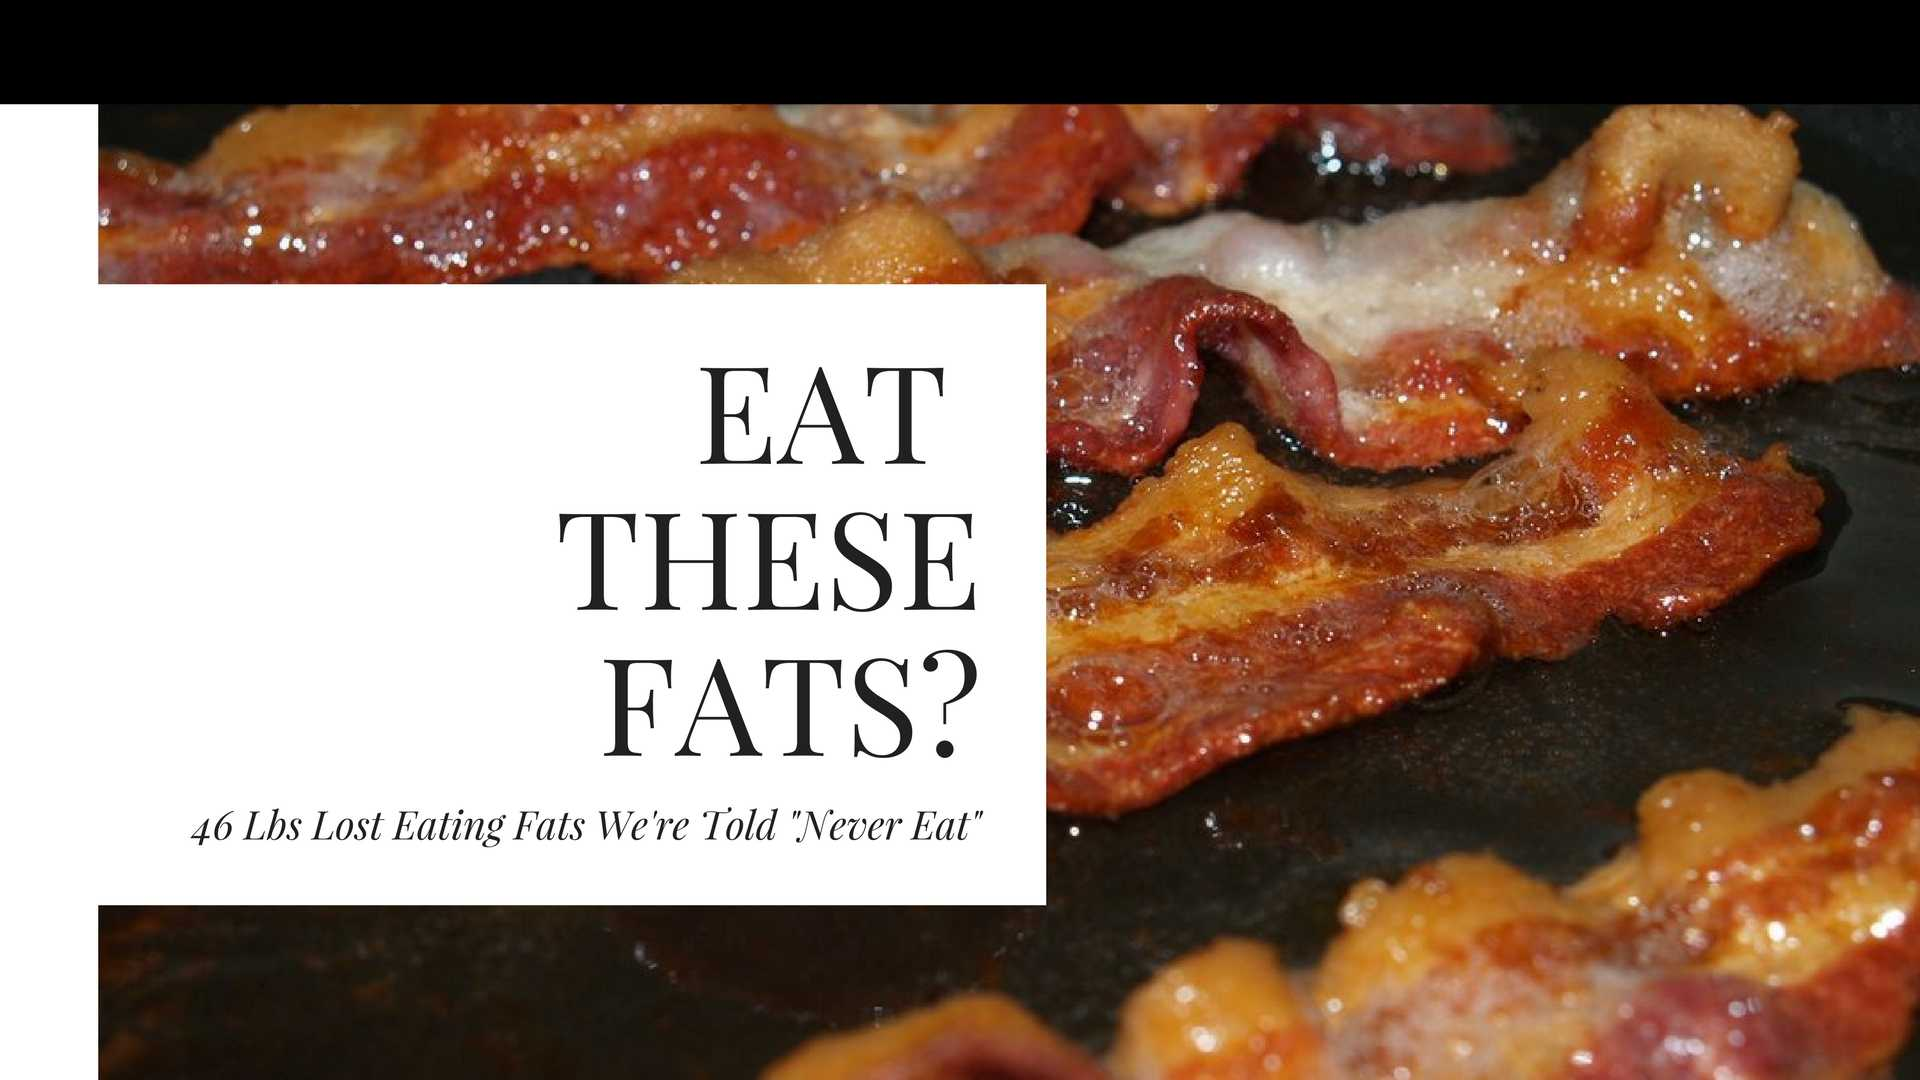 Should You Start Eating These Fats?